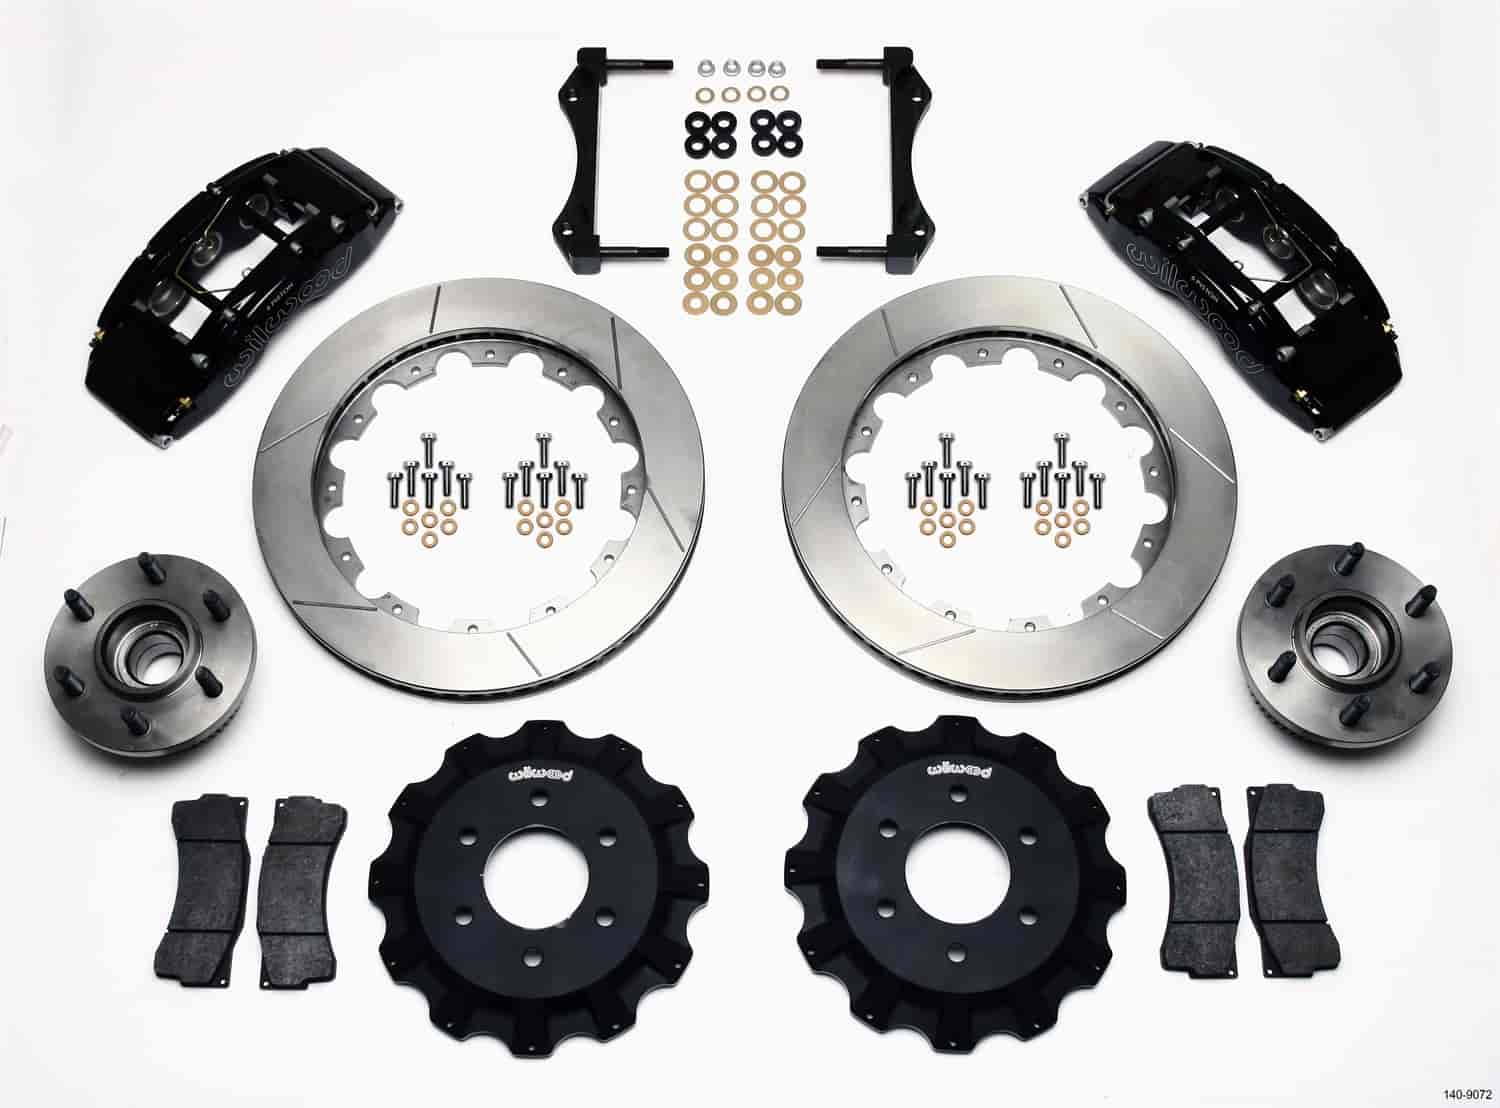 Wilwood 140-9072 - Wilwood TC6R Big Brake Truck Front Brake Kit